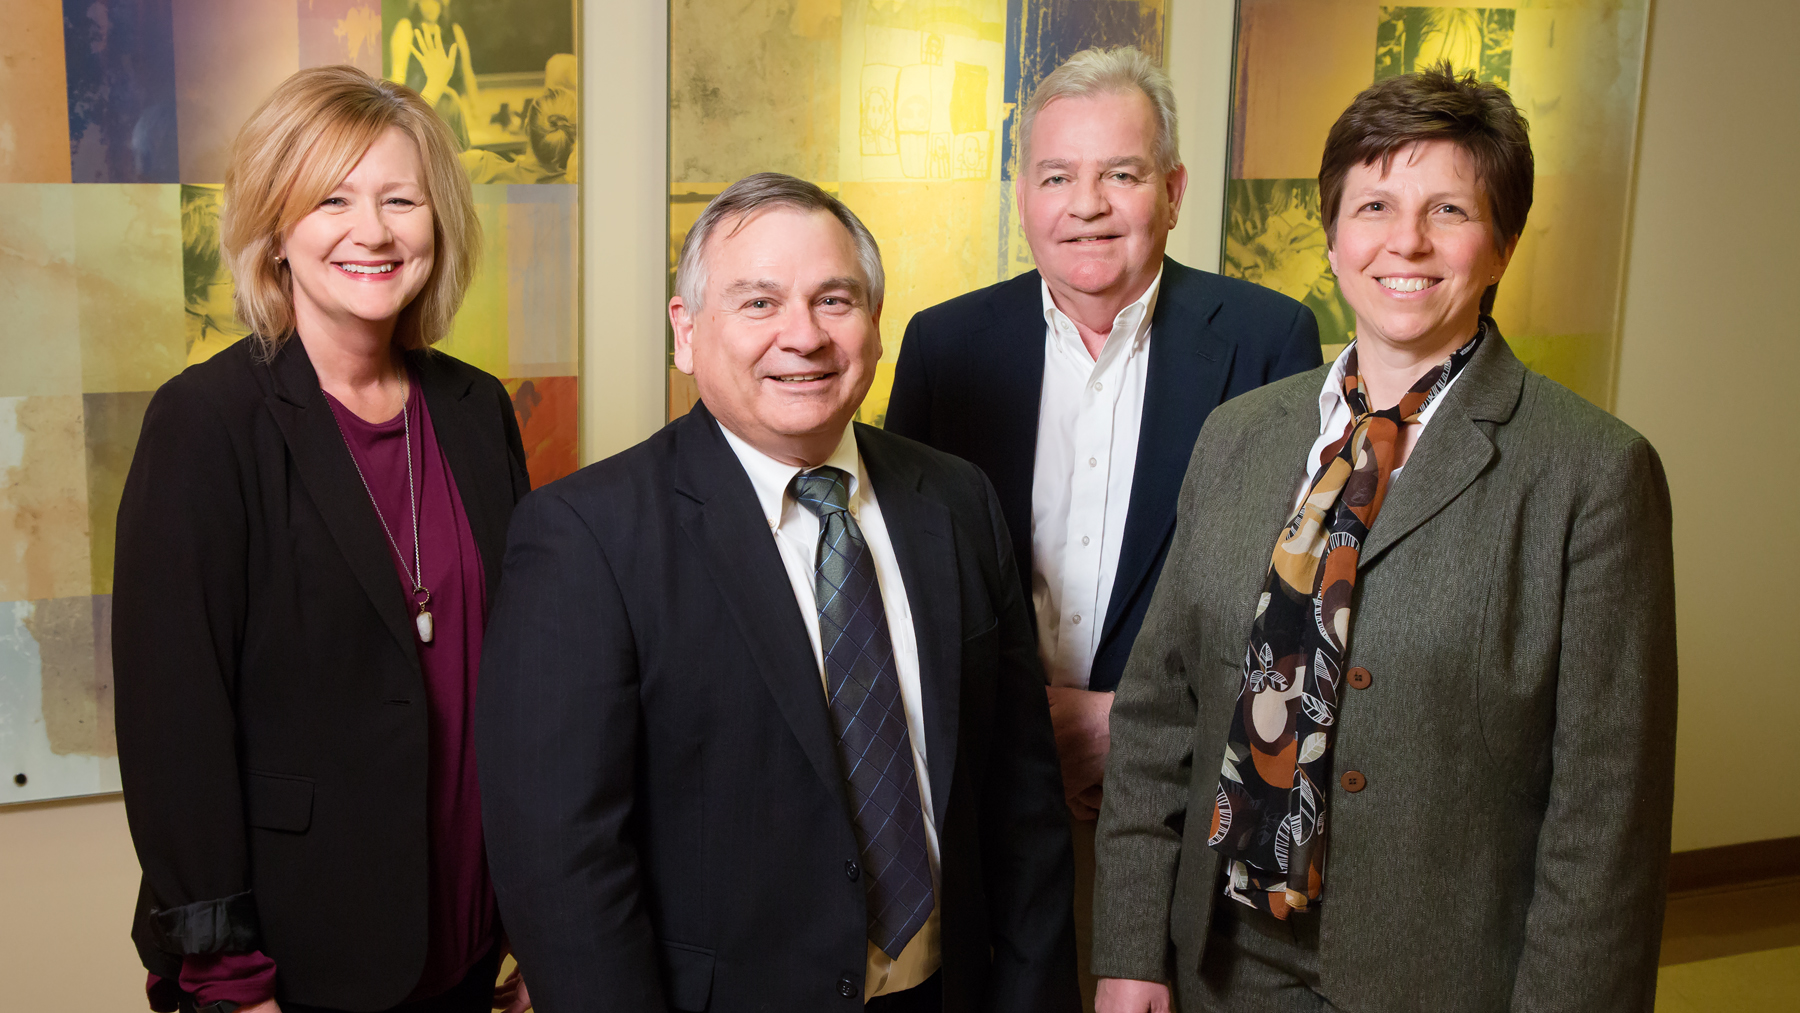 associate dean Mary Maurer; Peter Mulhall, the director of the Center for Prevention Research and Development; and Michael Glasser, an associate dean, U. of I. College of Medicine, Rockford, and program director Janet Liechty